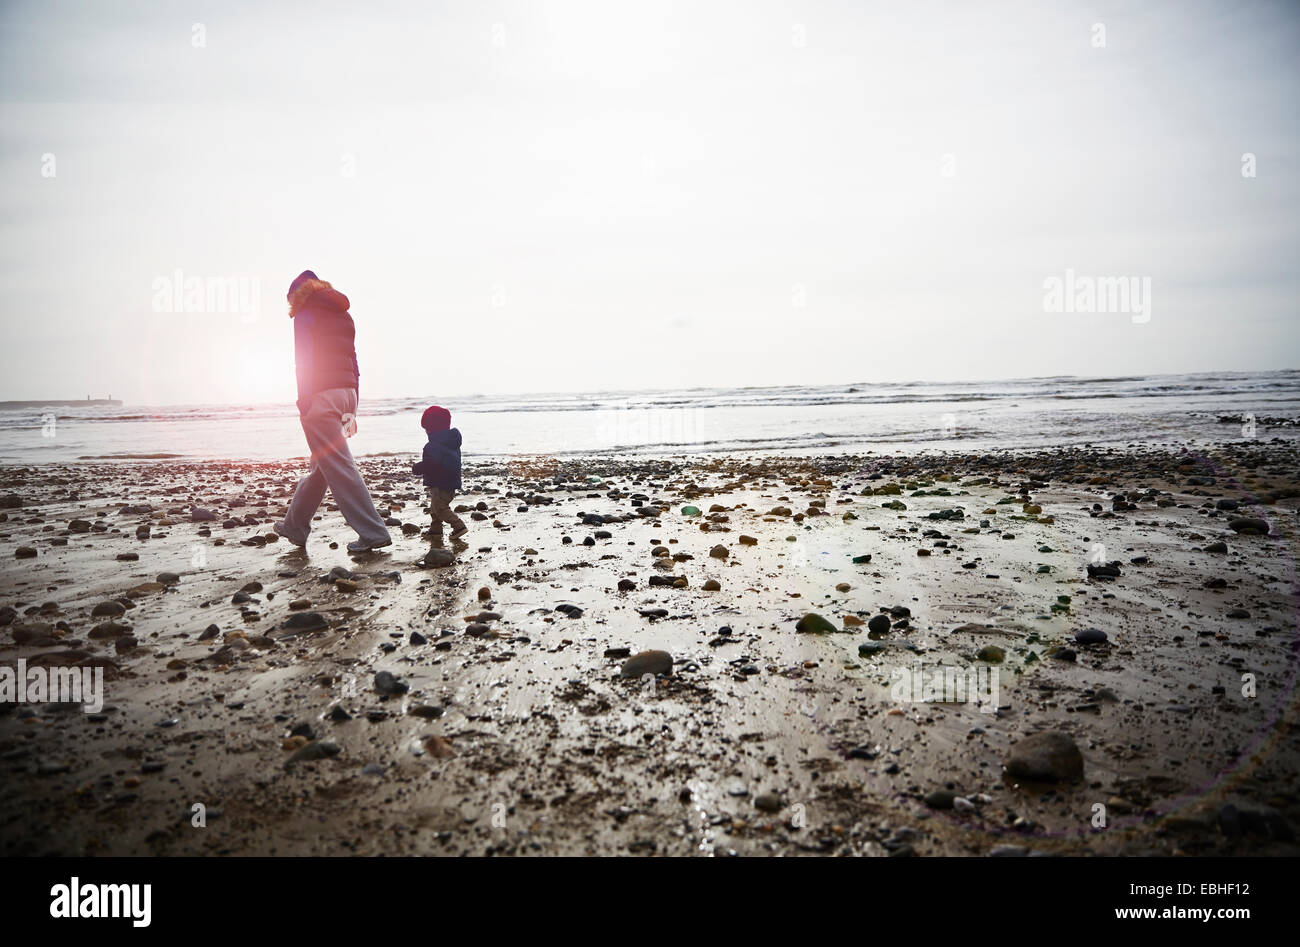 Male toddler and mother strolling on beach - Stock Image